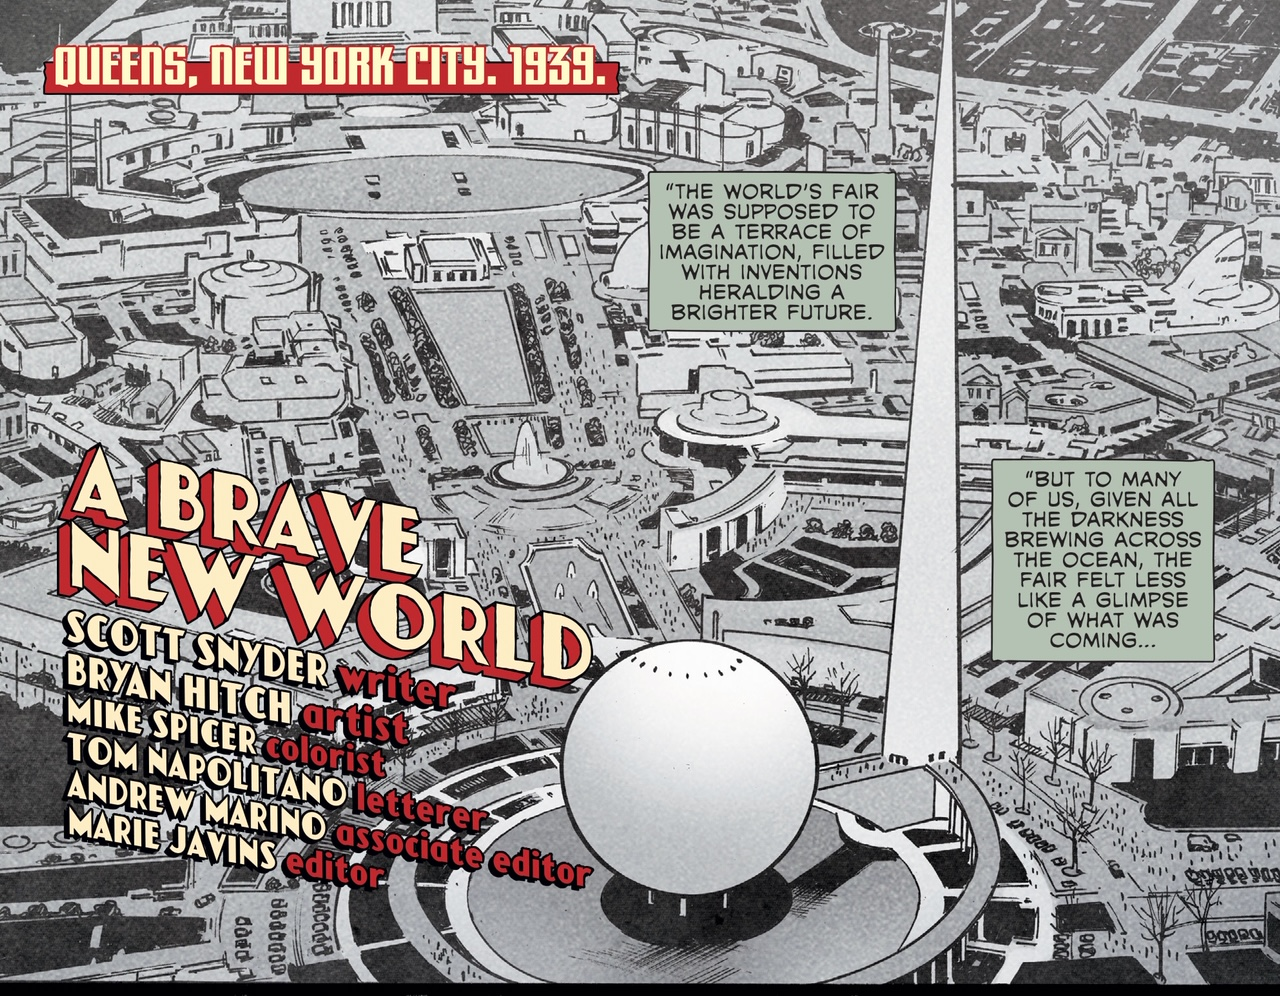 """First Look: """"A Brave New World"""" by Scott Snyder and Bryan Hitch appearing in Wonder Woman #750:"""